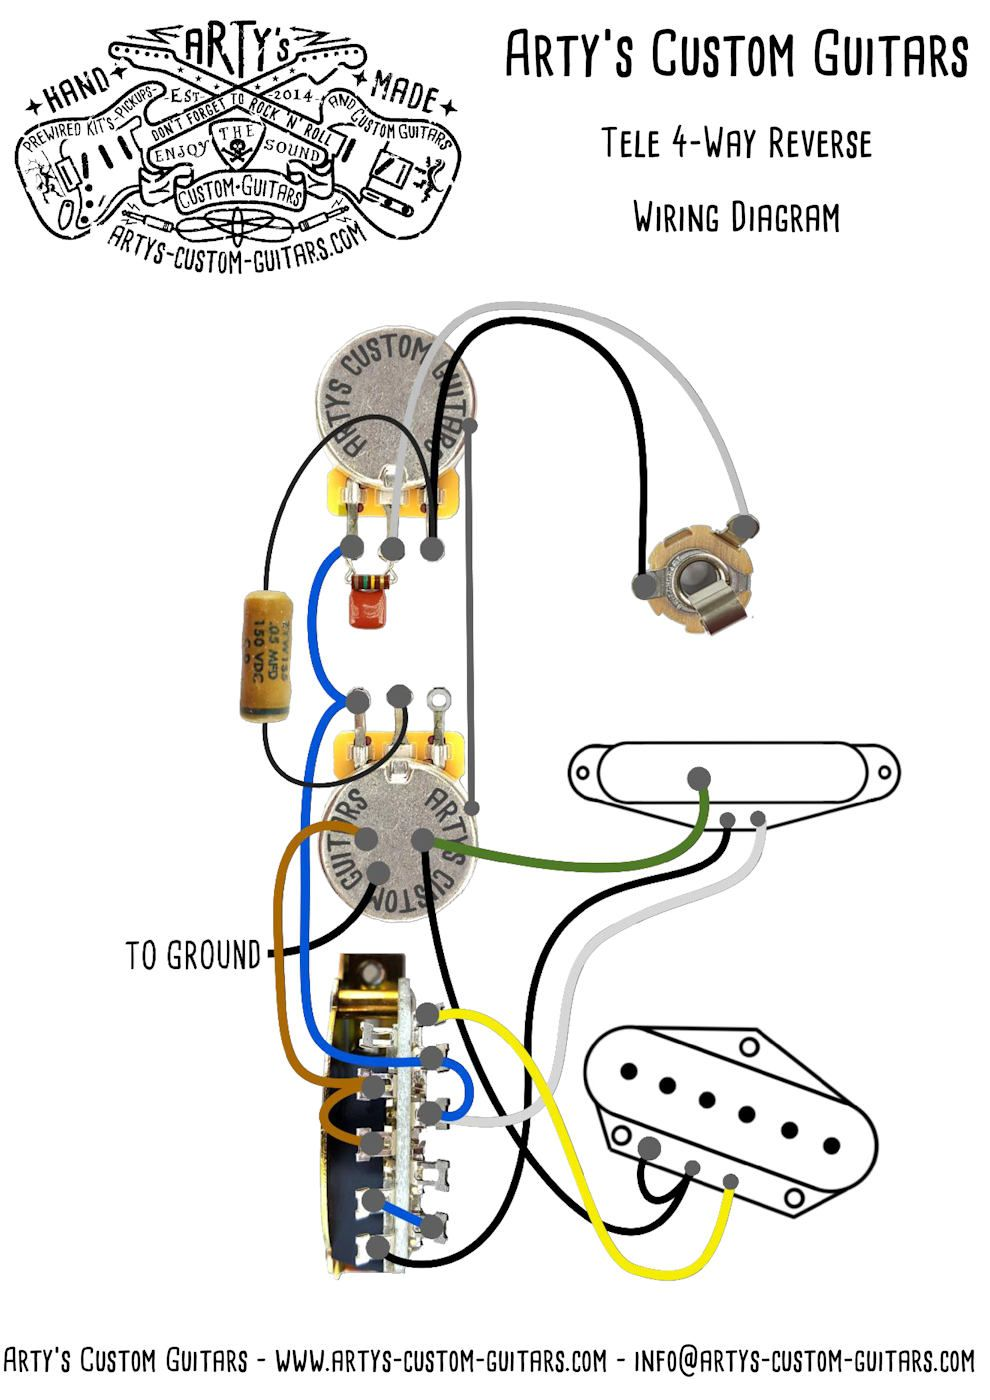 WIRING HARNESS Telecaster 3Way Reverse Tele in 2019